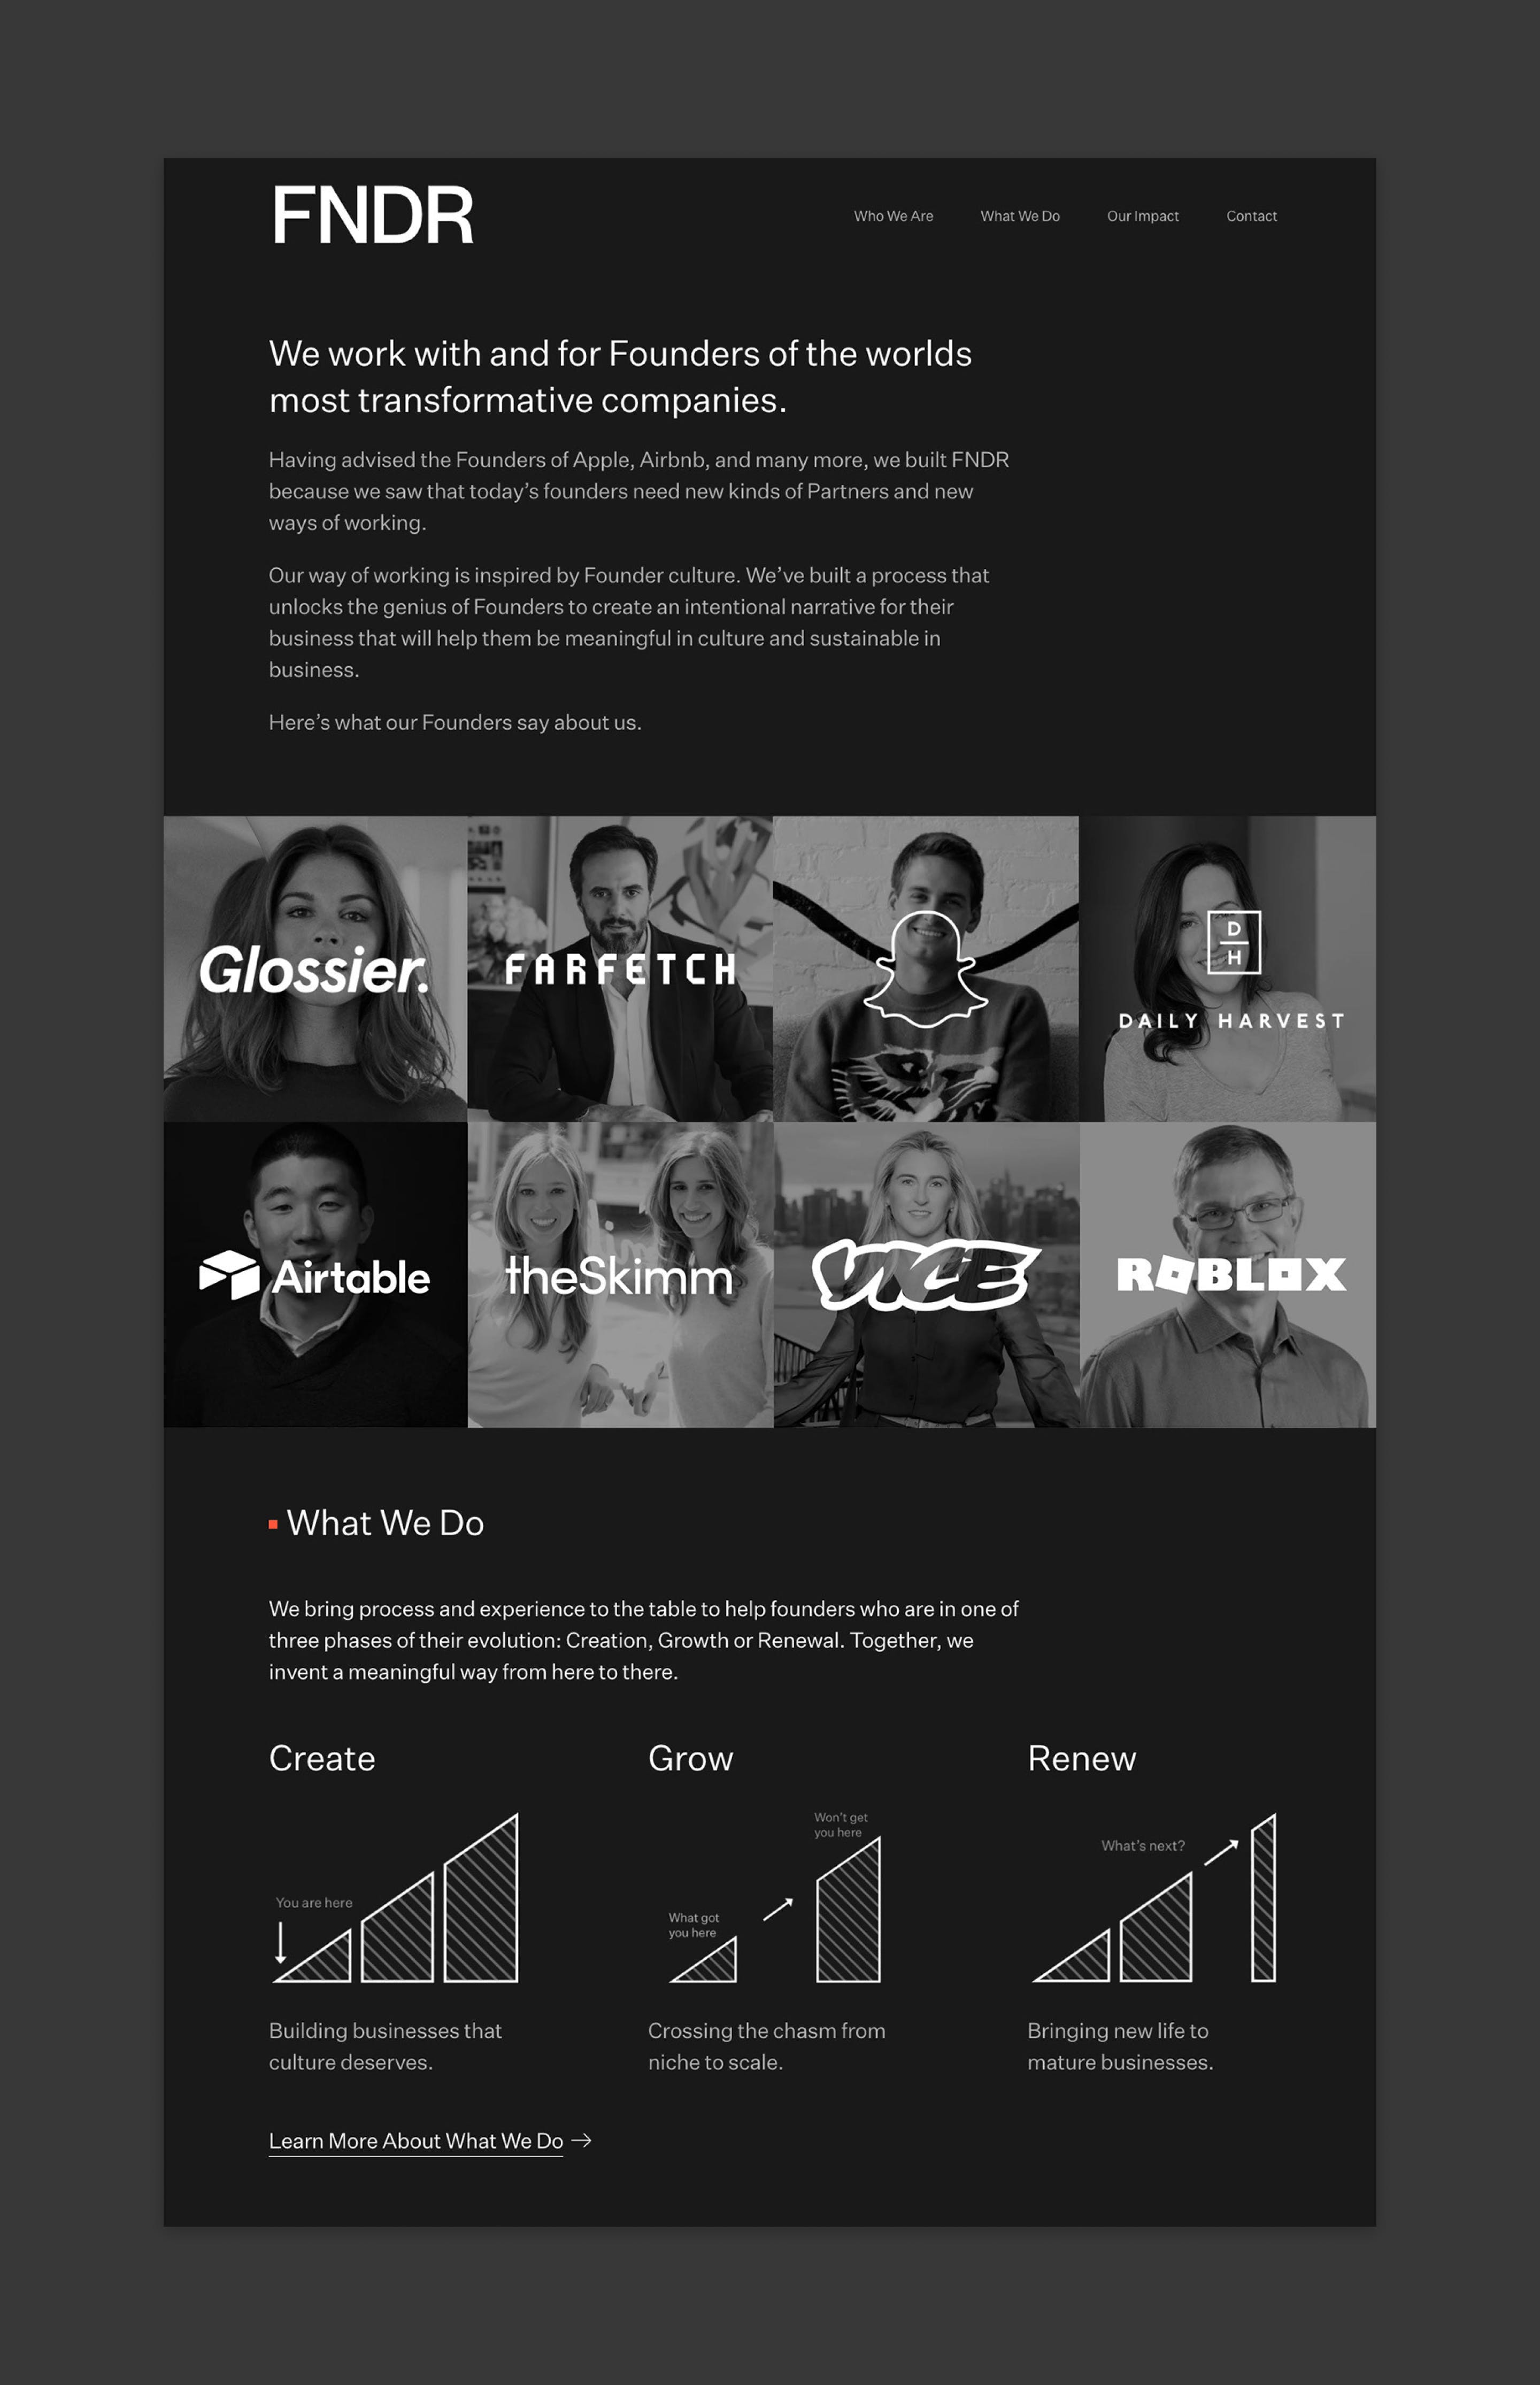 A flat comp of the FNDR homepage. It's a black background with text up top, a grid of Founders and their company logos over their faces, and a graph of what they do - from Create to Grow to Renew.